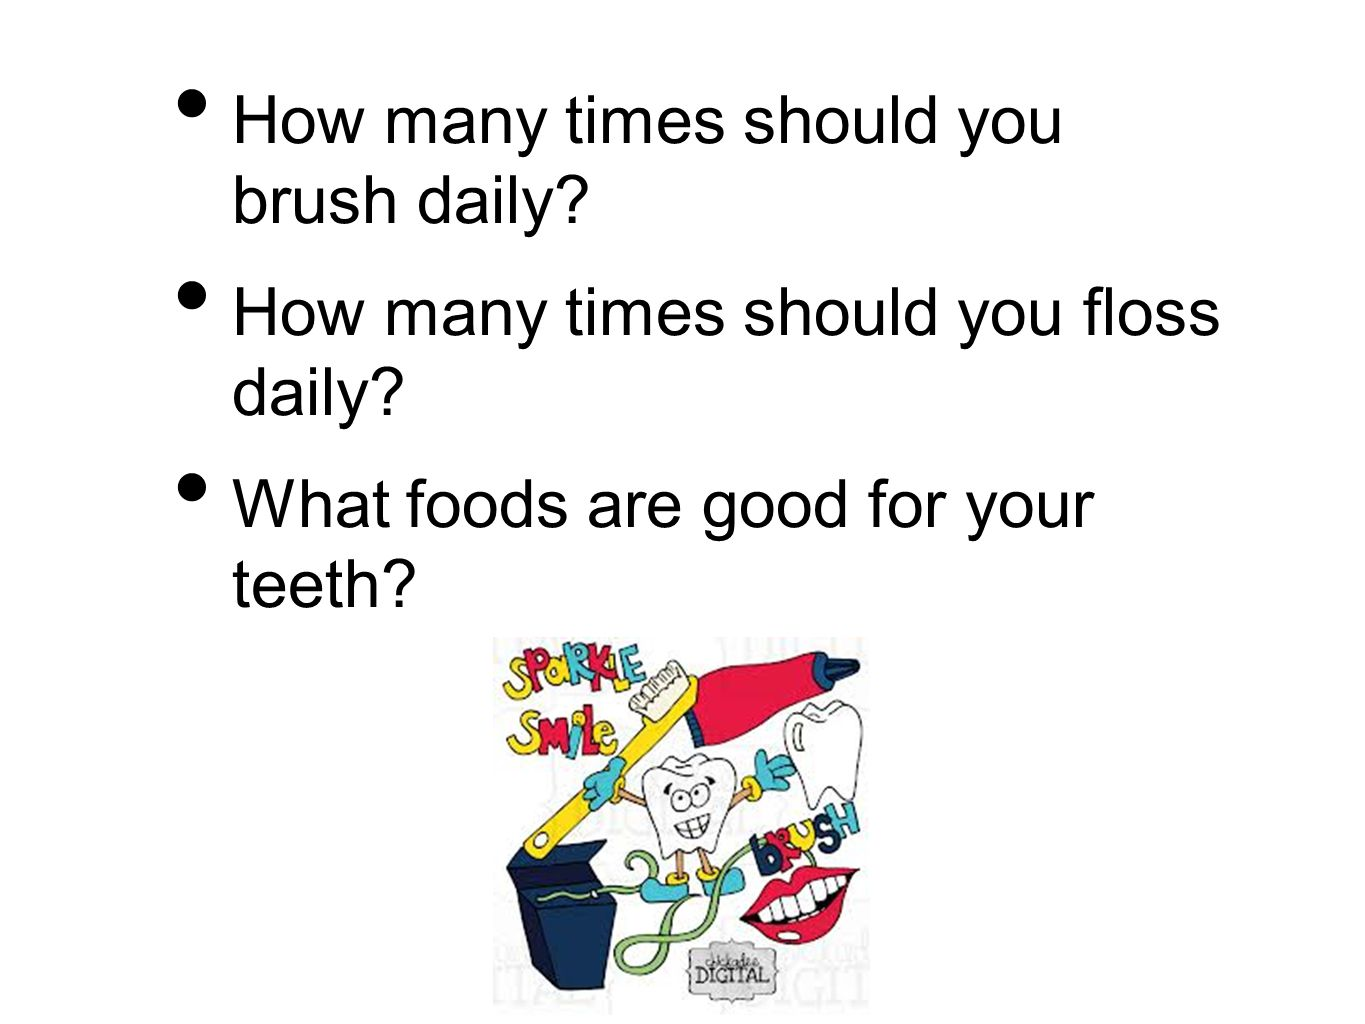 How many times should you brush daily